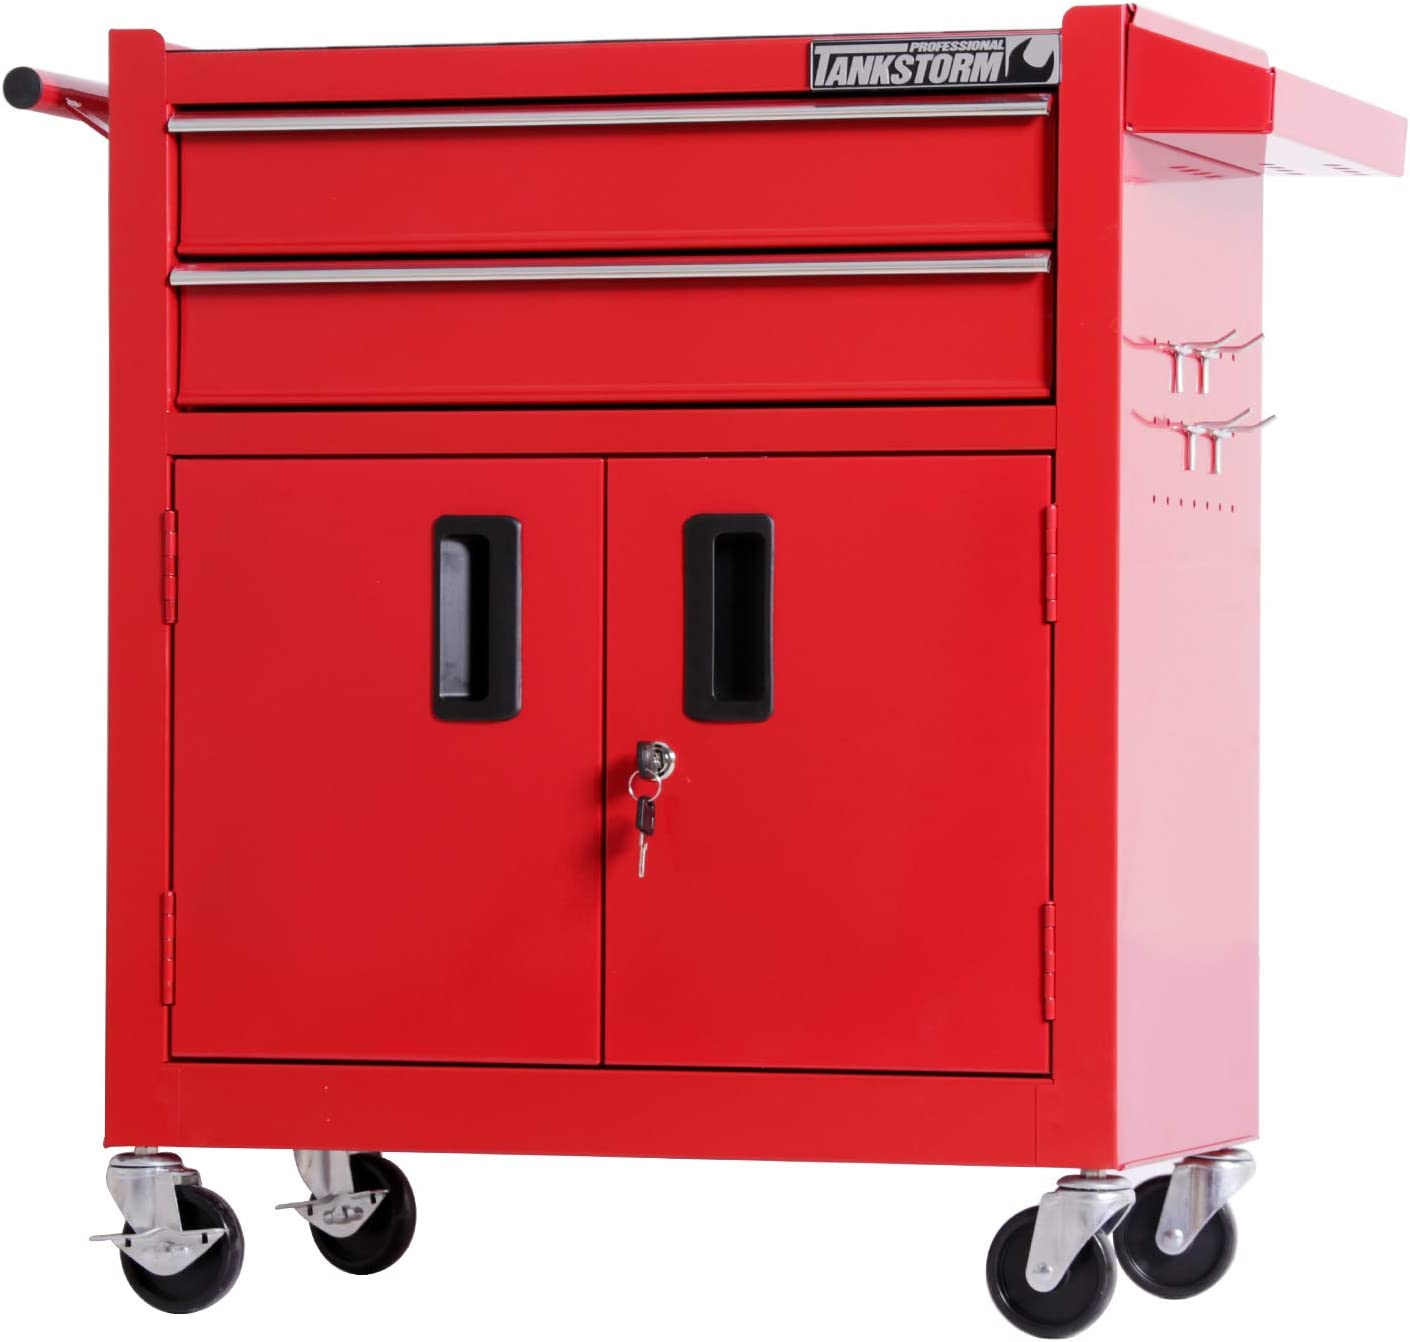 TANKSTORM Tool Chest Heavy Duty Cart Steel Rolling Tool Box with Lockable Doors (TZ12 Red)